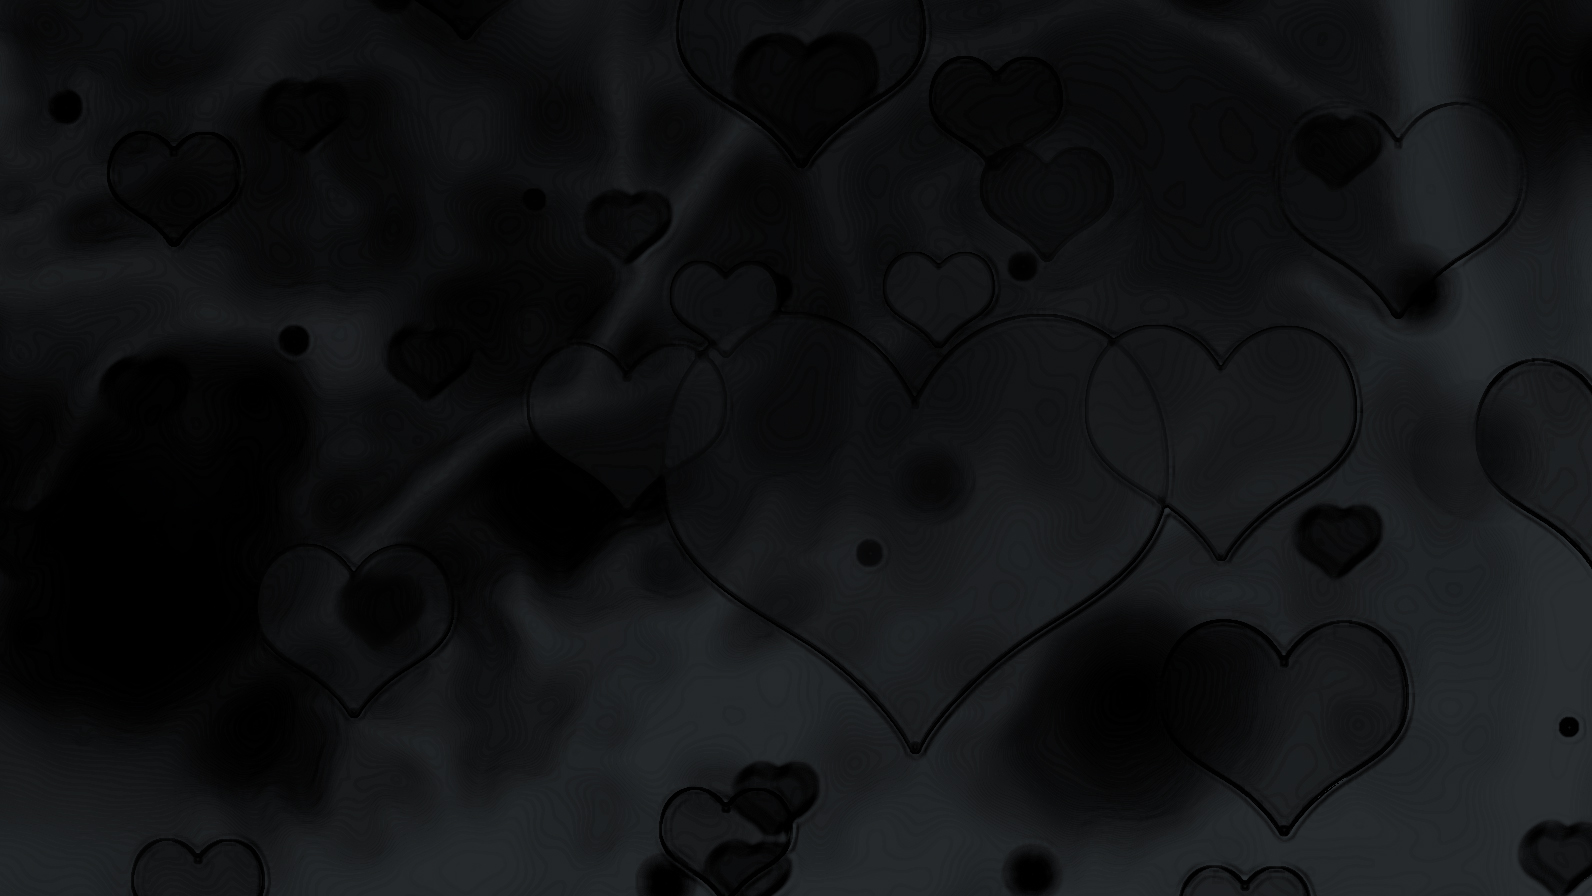 Coal Black Background with hearts overlay